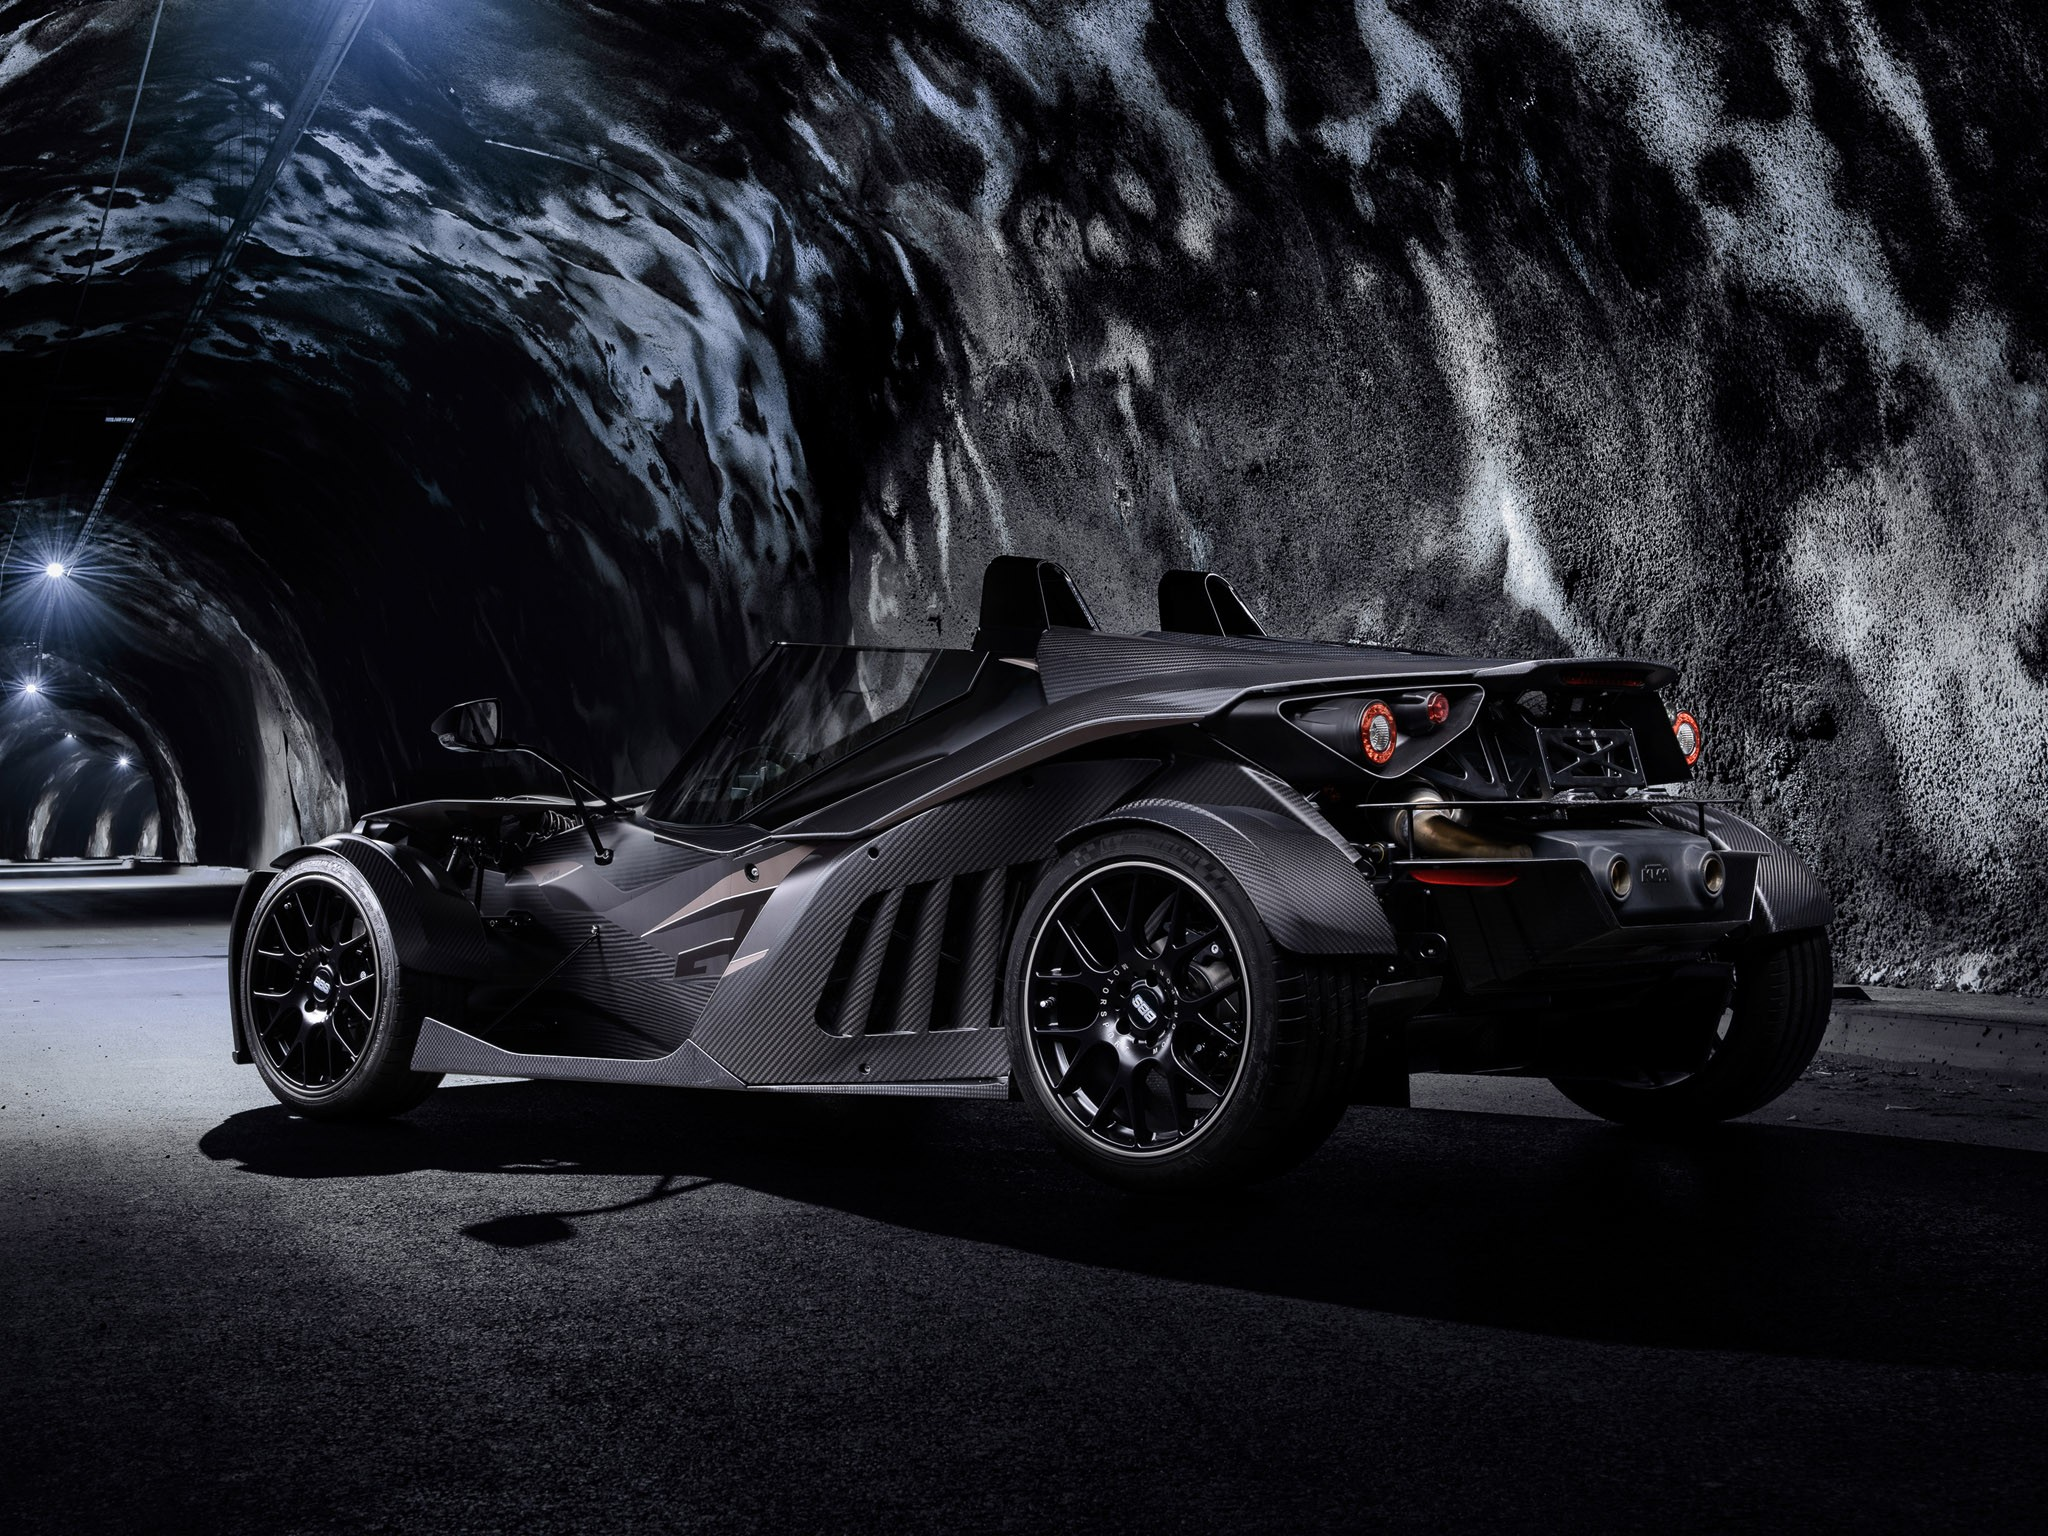 Ktm X-Bow GT Black Edition 2016